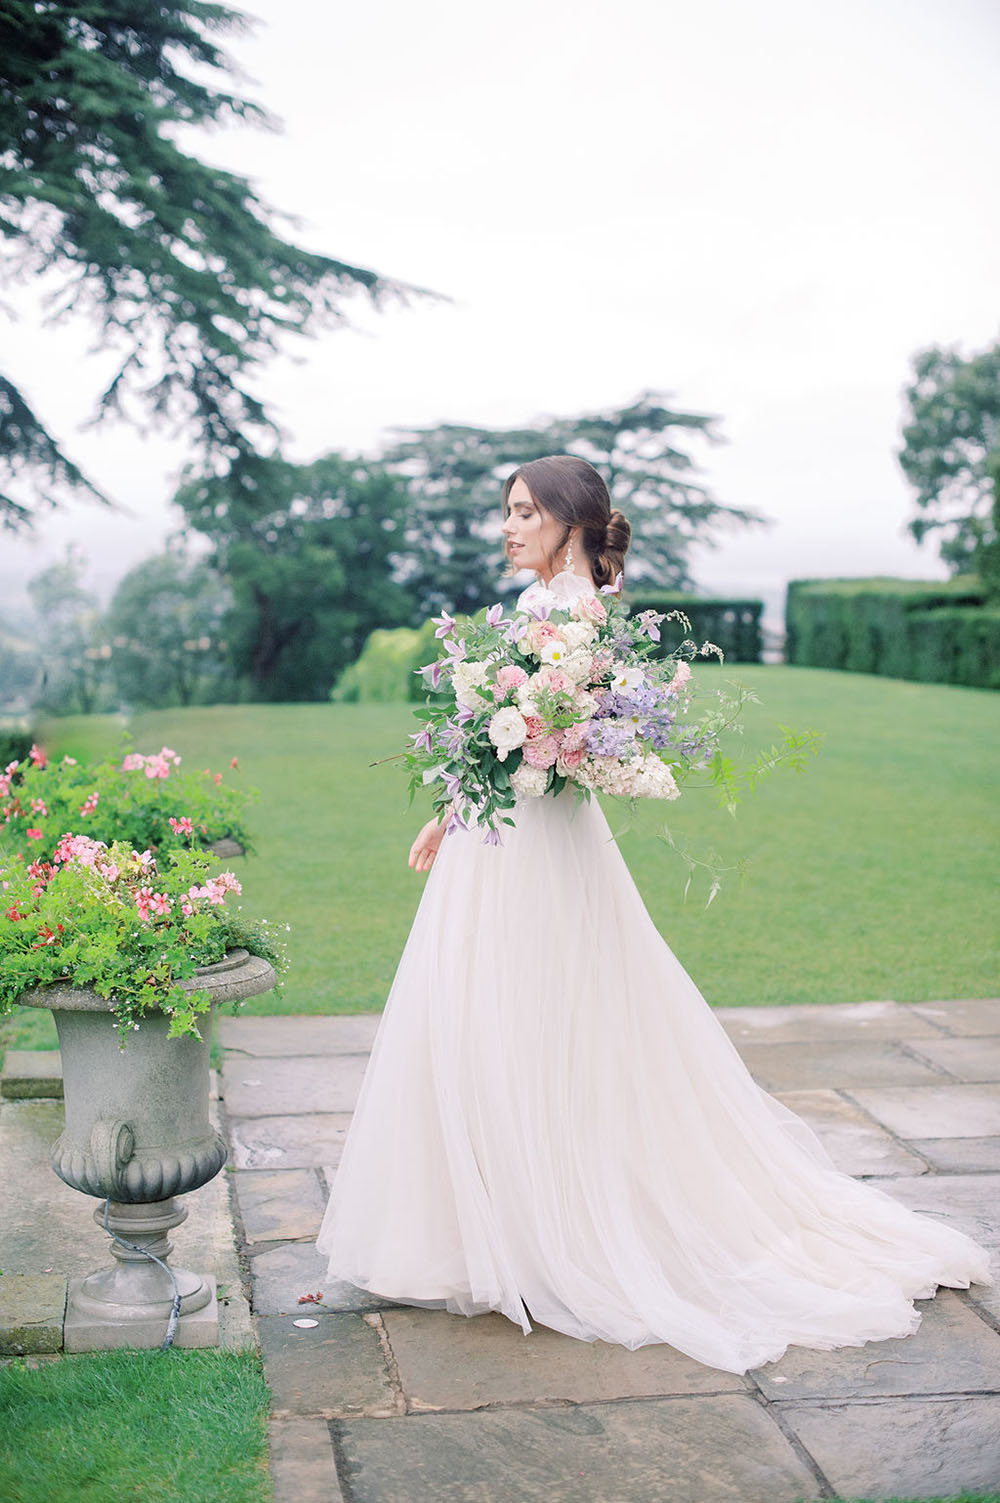 Outdoor bridal portrait with a flowy wedding dress featuring tulle bow straps and a pastel bouquet